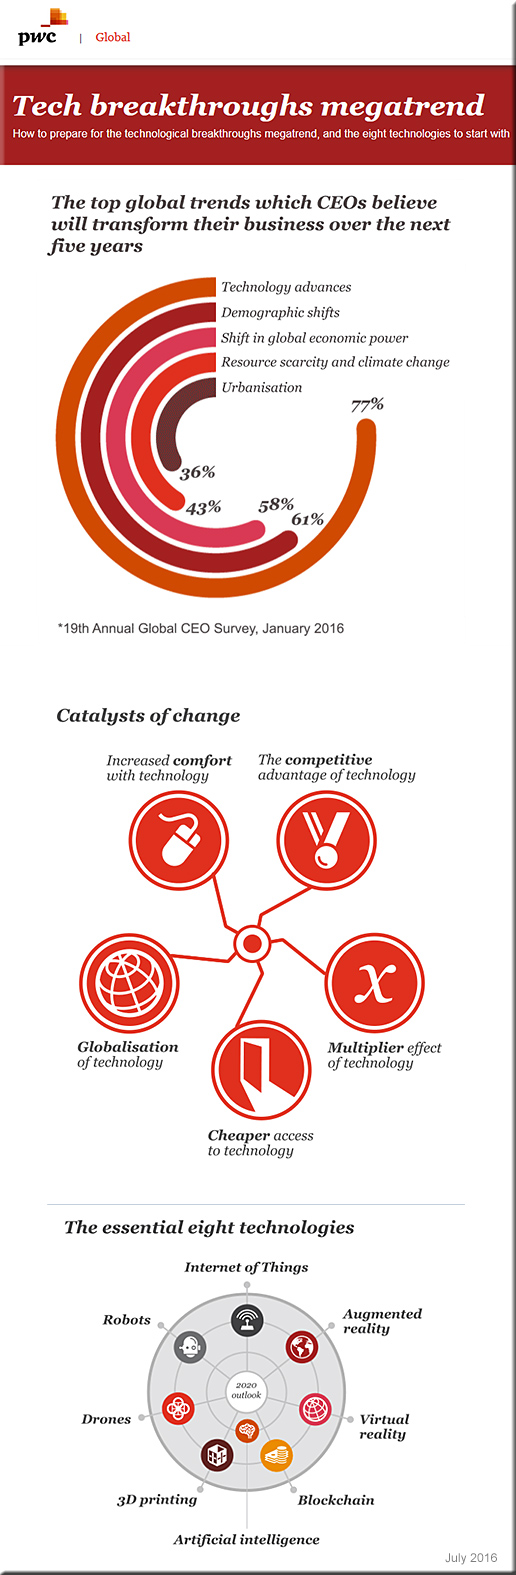 pwc-global-megatrends-july2016